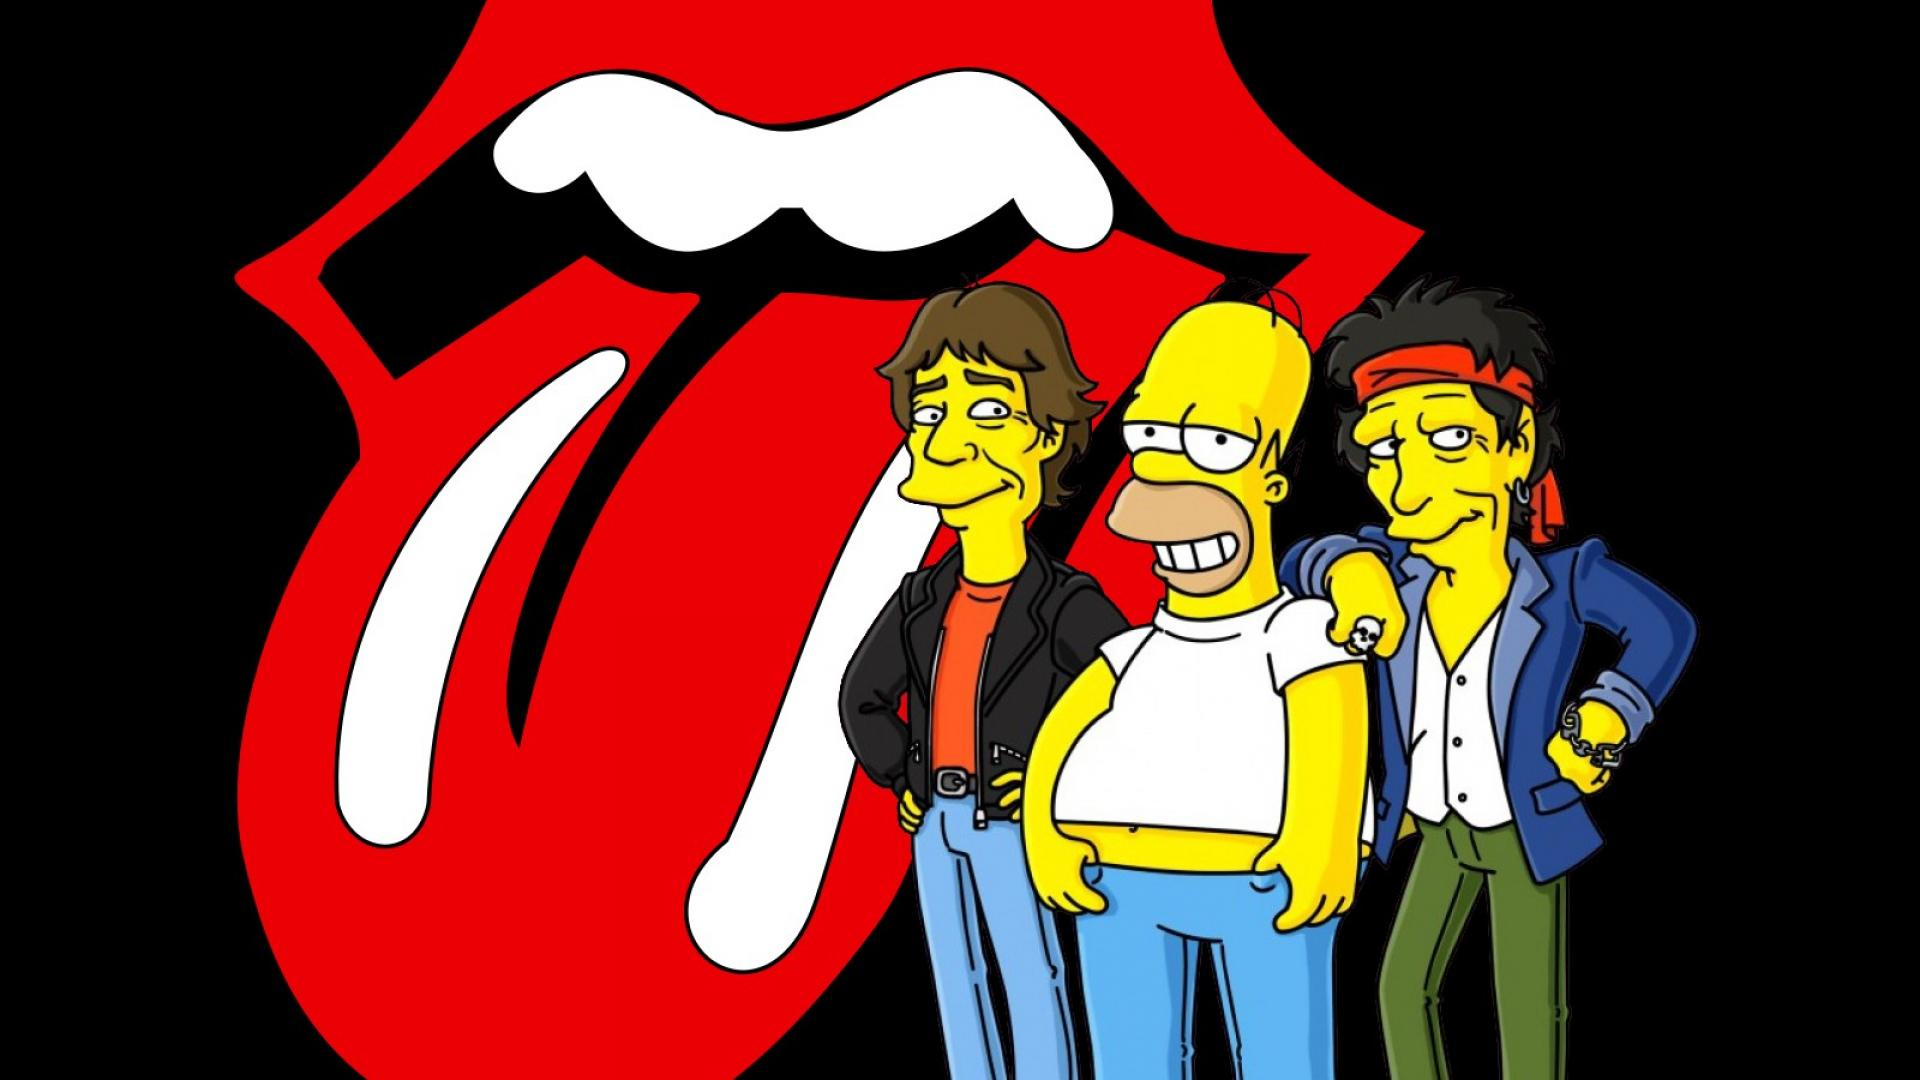 simpsons art #10